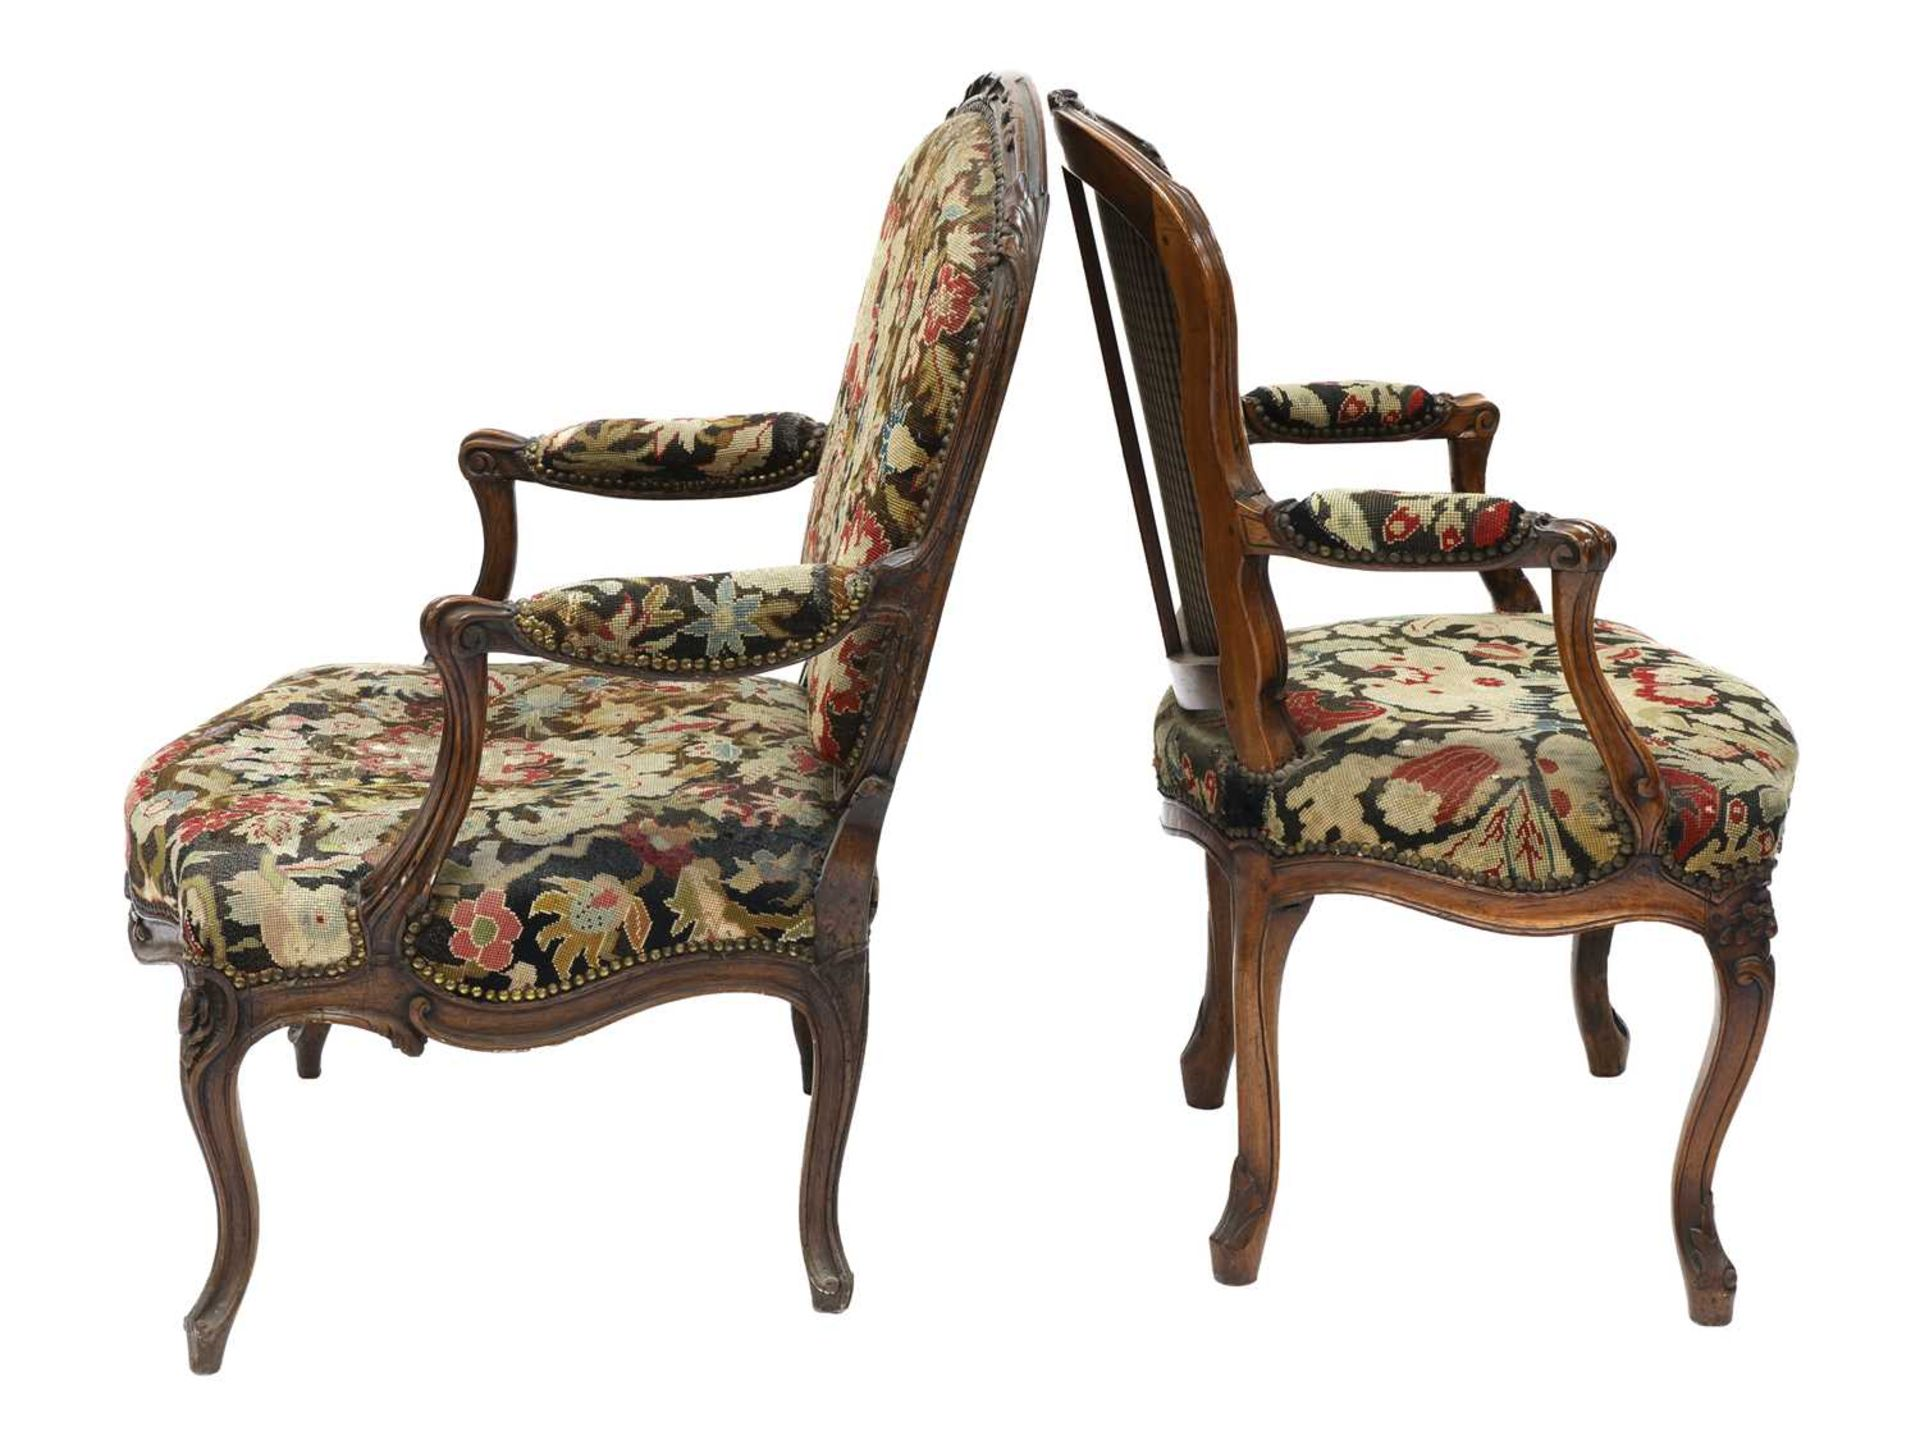 A French walnut-framed armchair, - Image 2 of 4